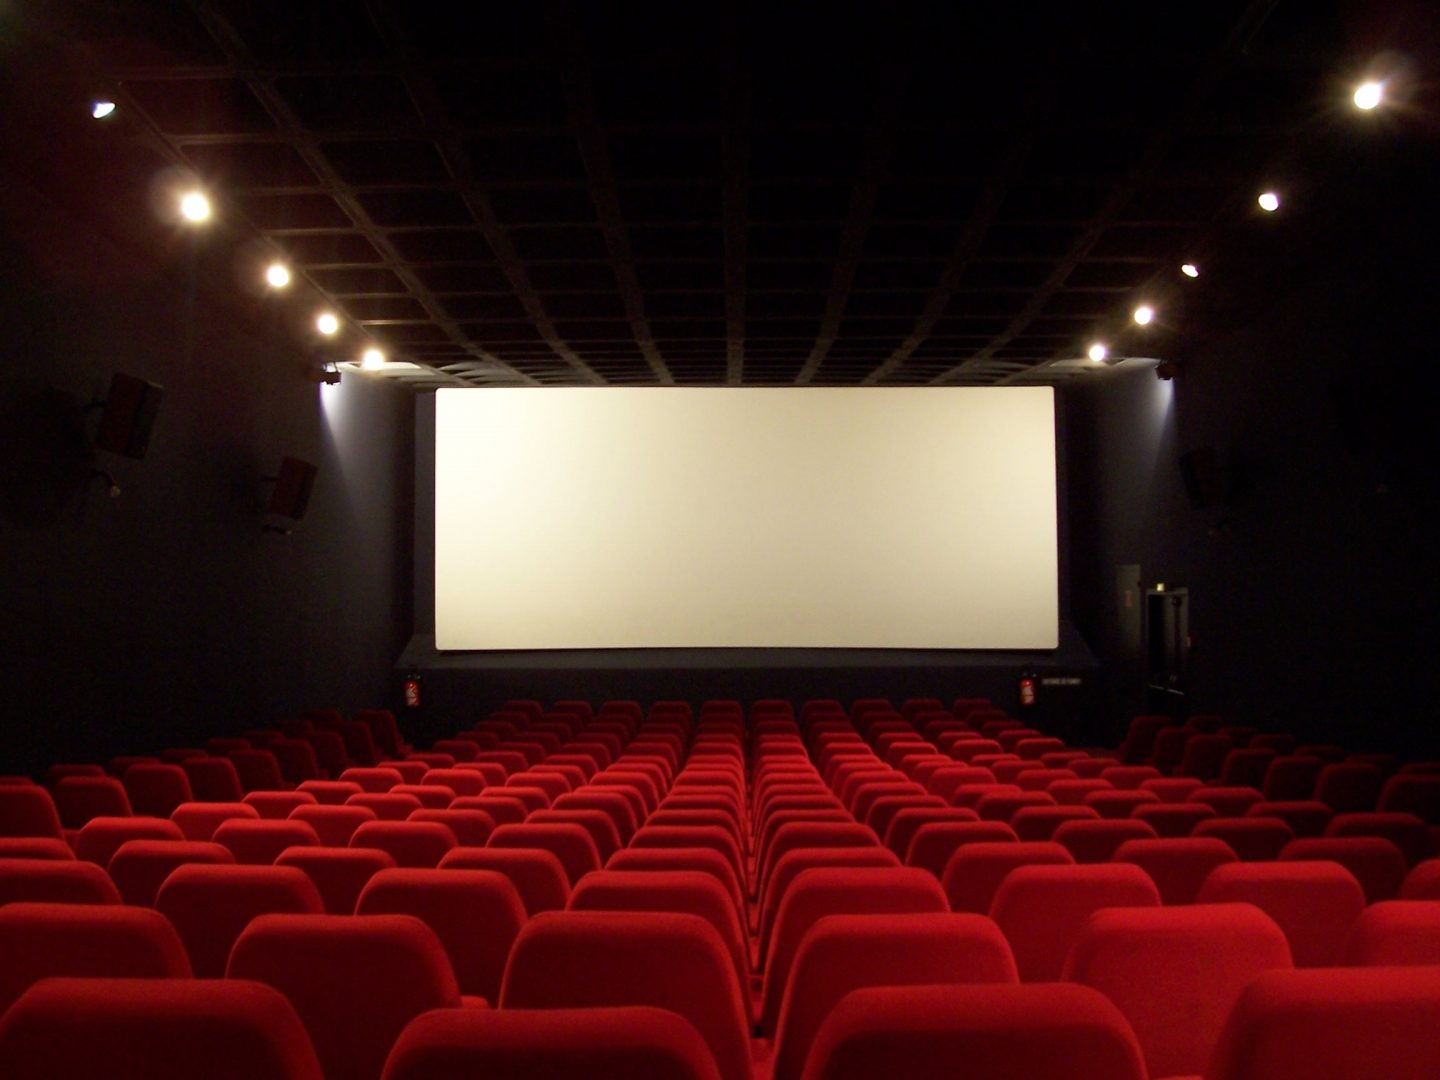 fotos-de-cinema